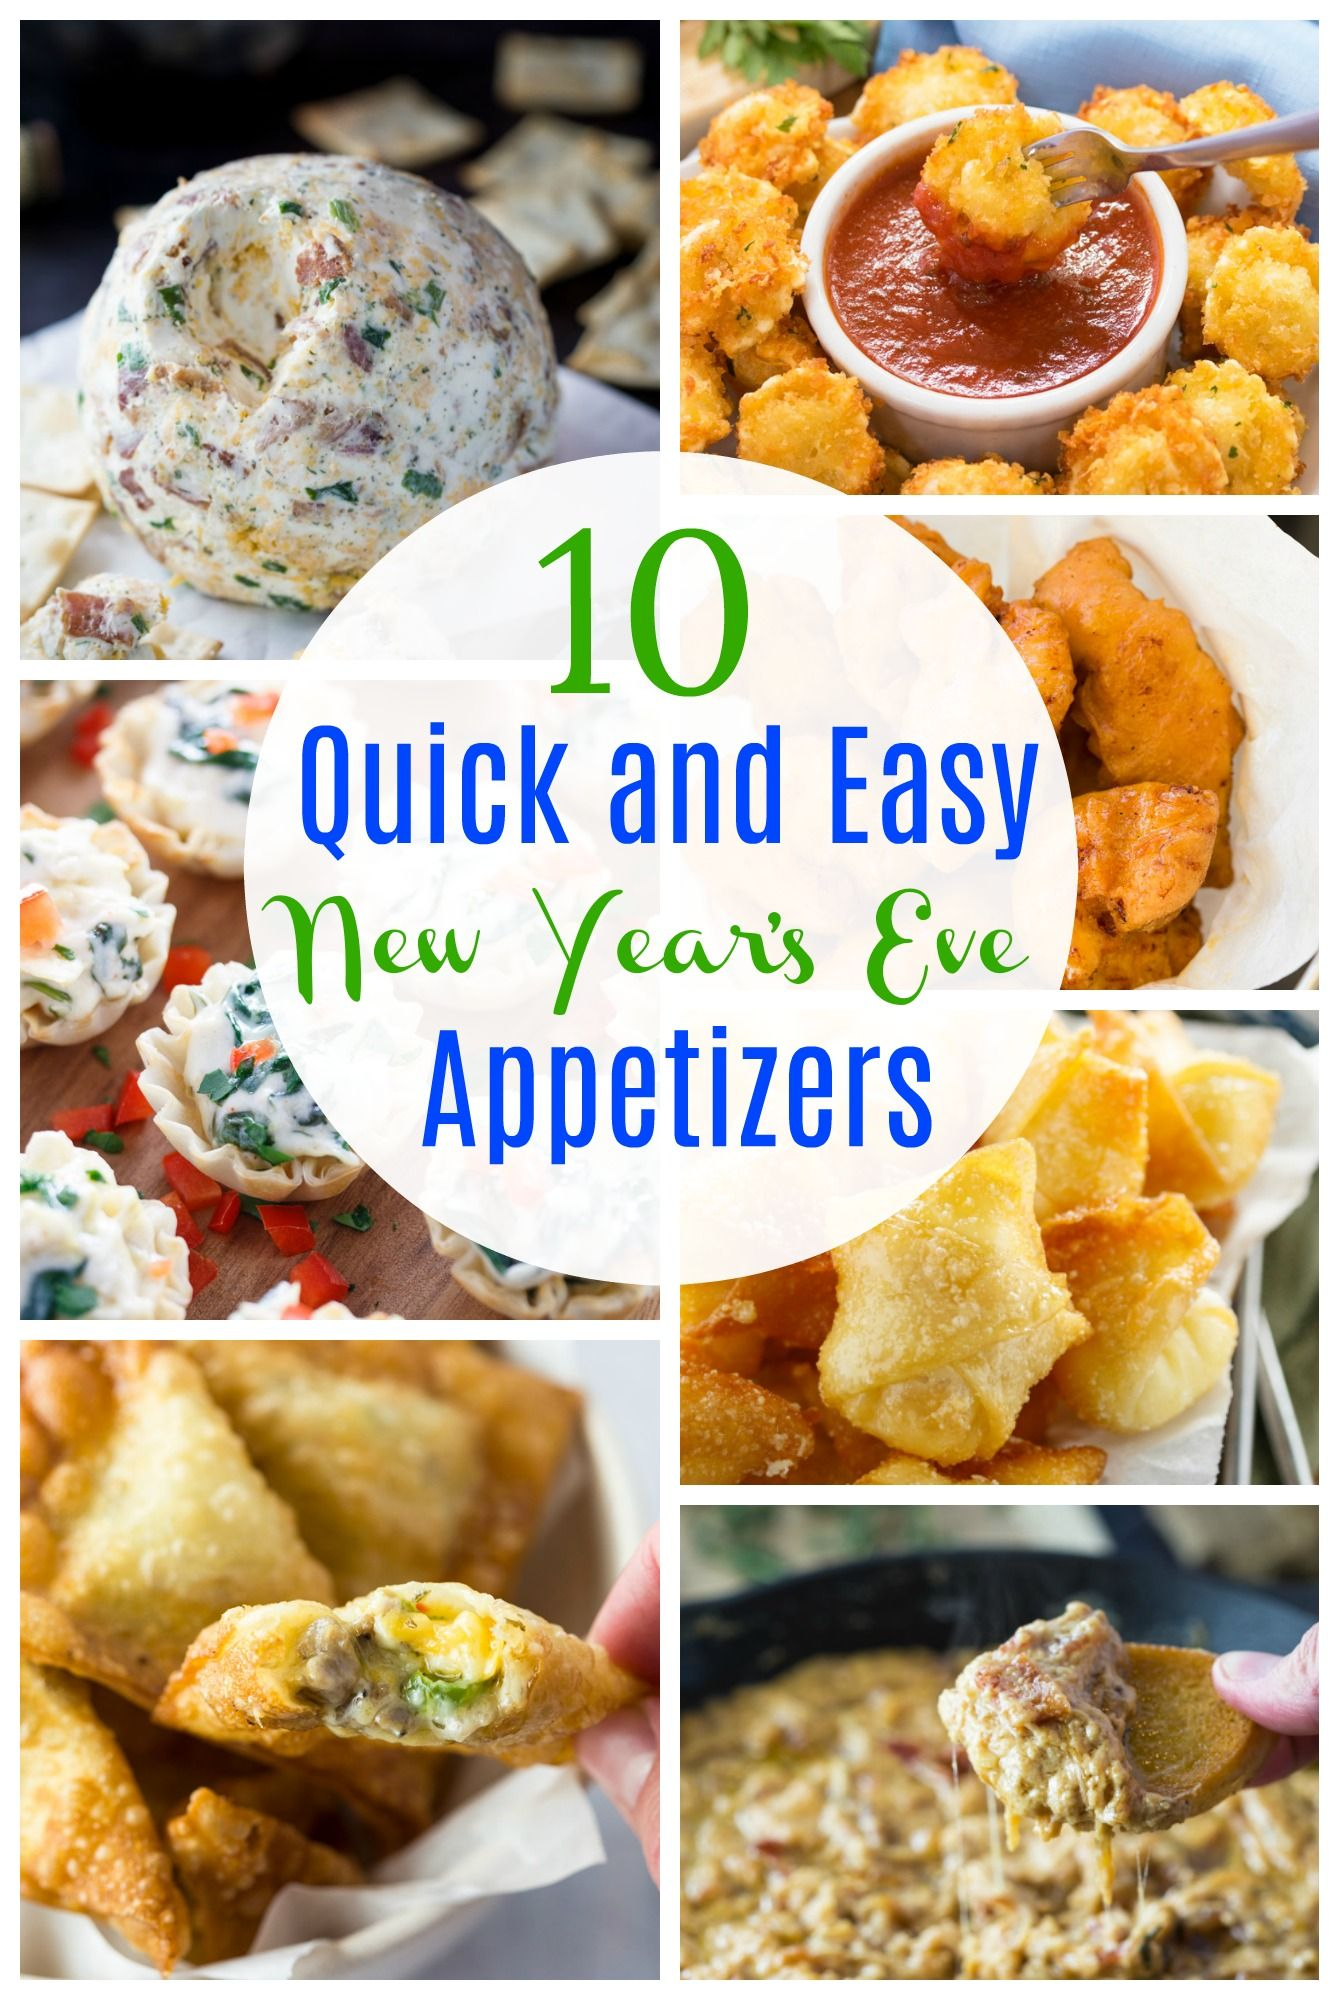 10 Quick And Easy New Years Eve Appetizers The Cozy Cook